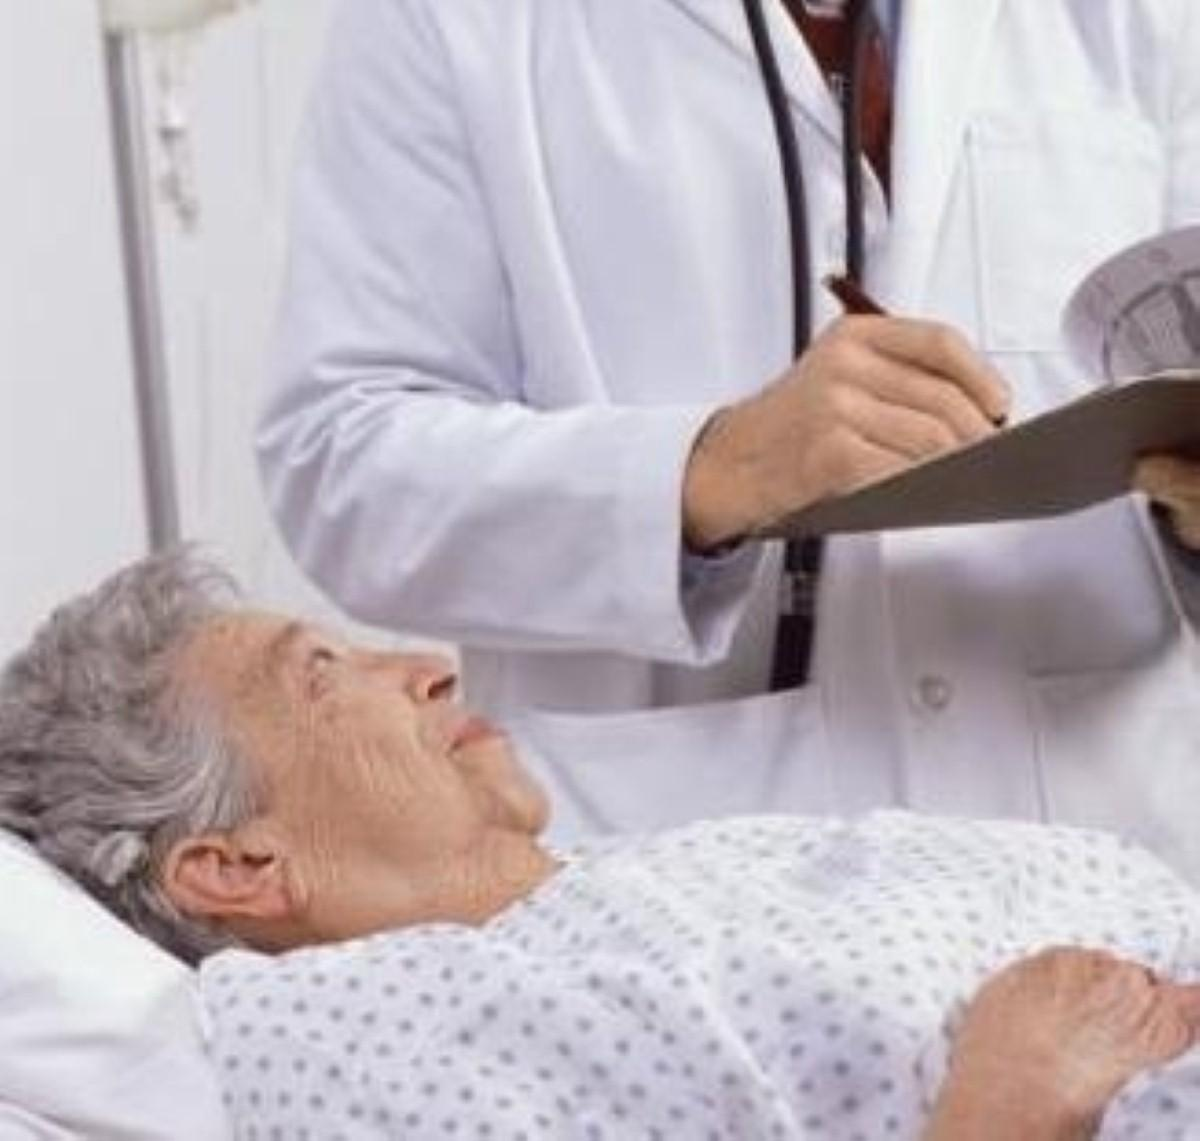 Hospitals 'need to rethink dementia care'